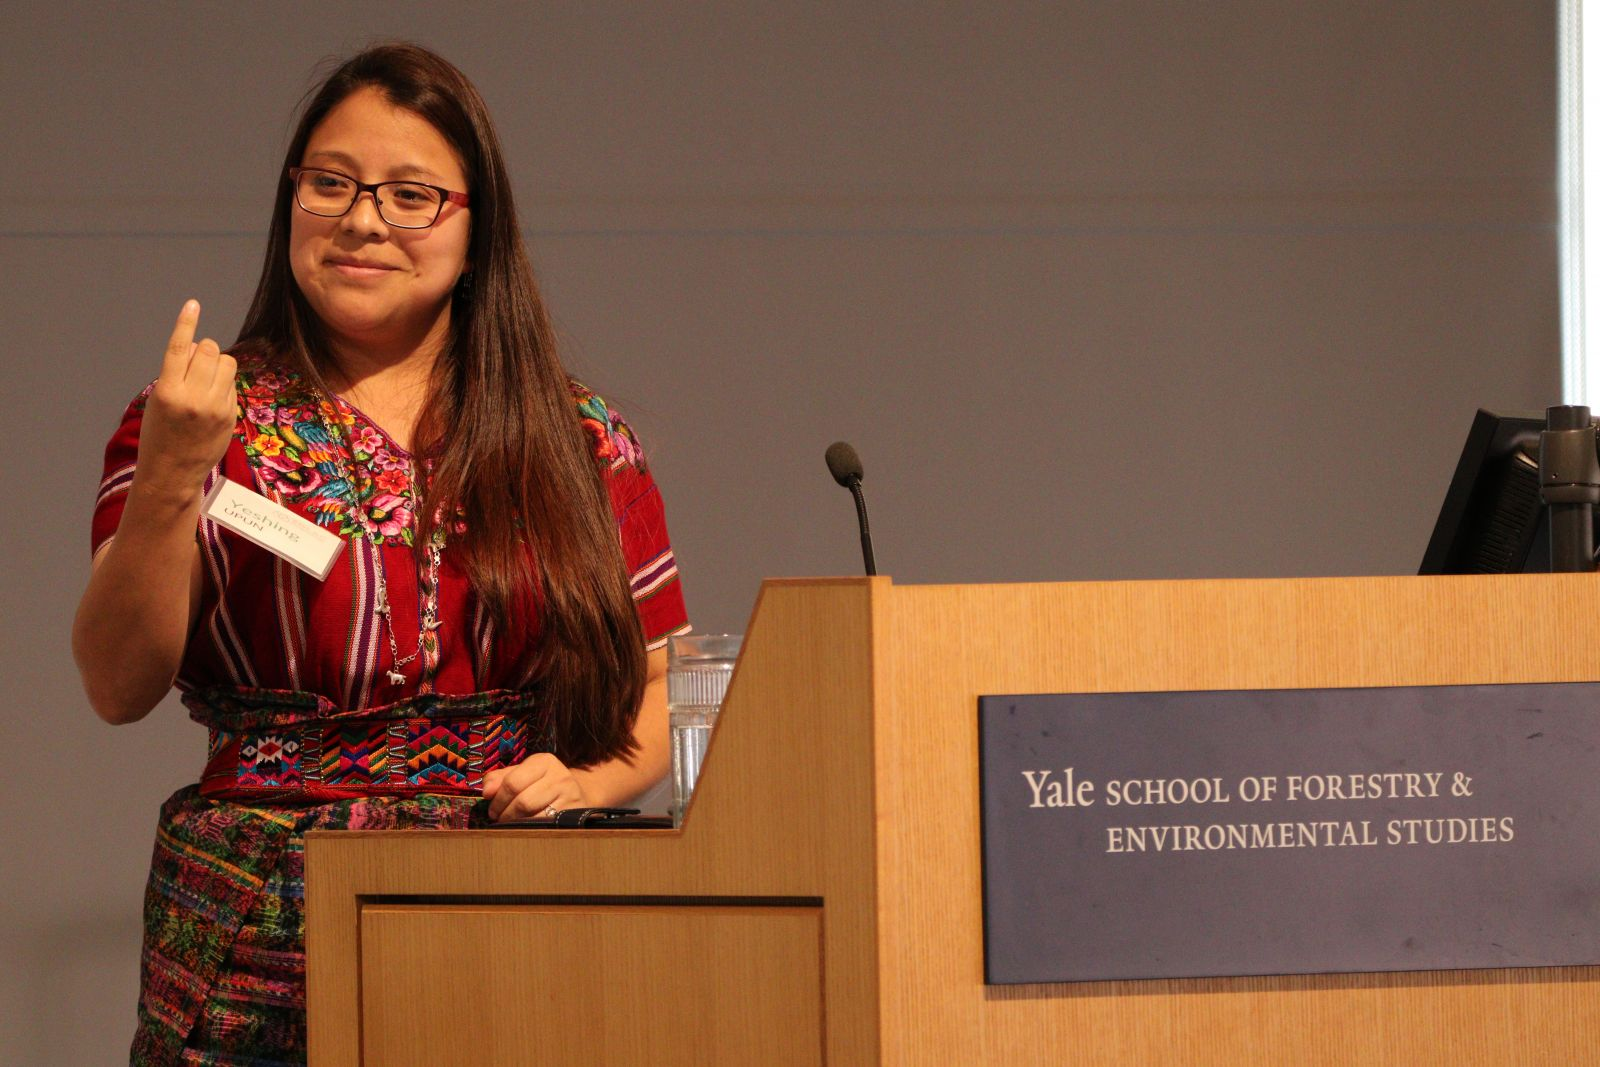 Yeshing Upun, a Mayan Kaqchikel woman from Guatemala, Lawyer and Coordinator at Sotzil, talked about initiatives that bring traditional knowledge and science together, to protect the collective rights of the Mayans for integral development, a model of development that includes their culture.